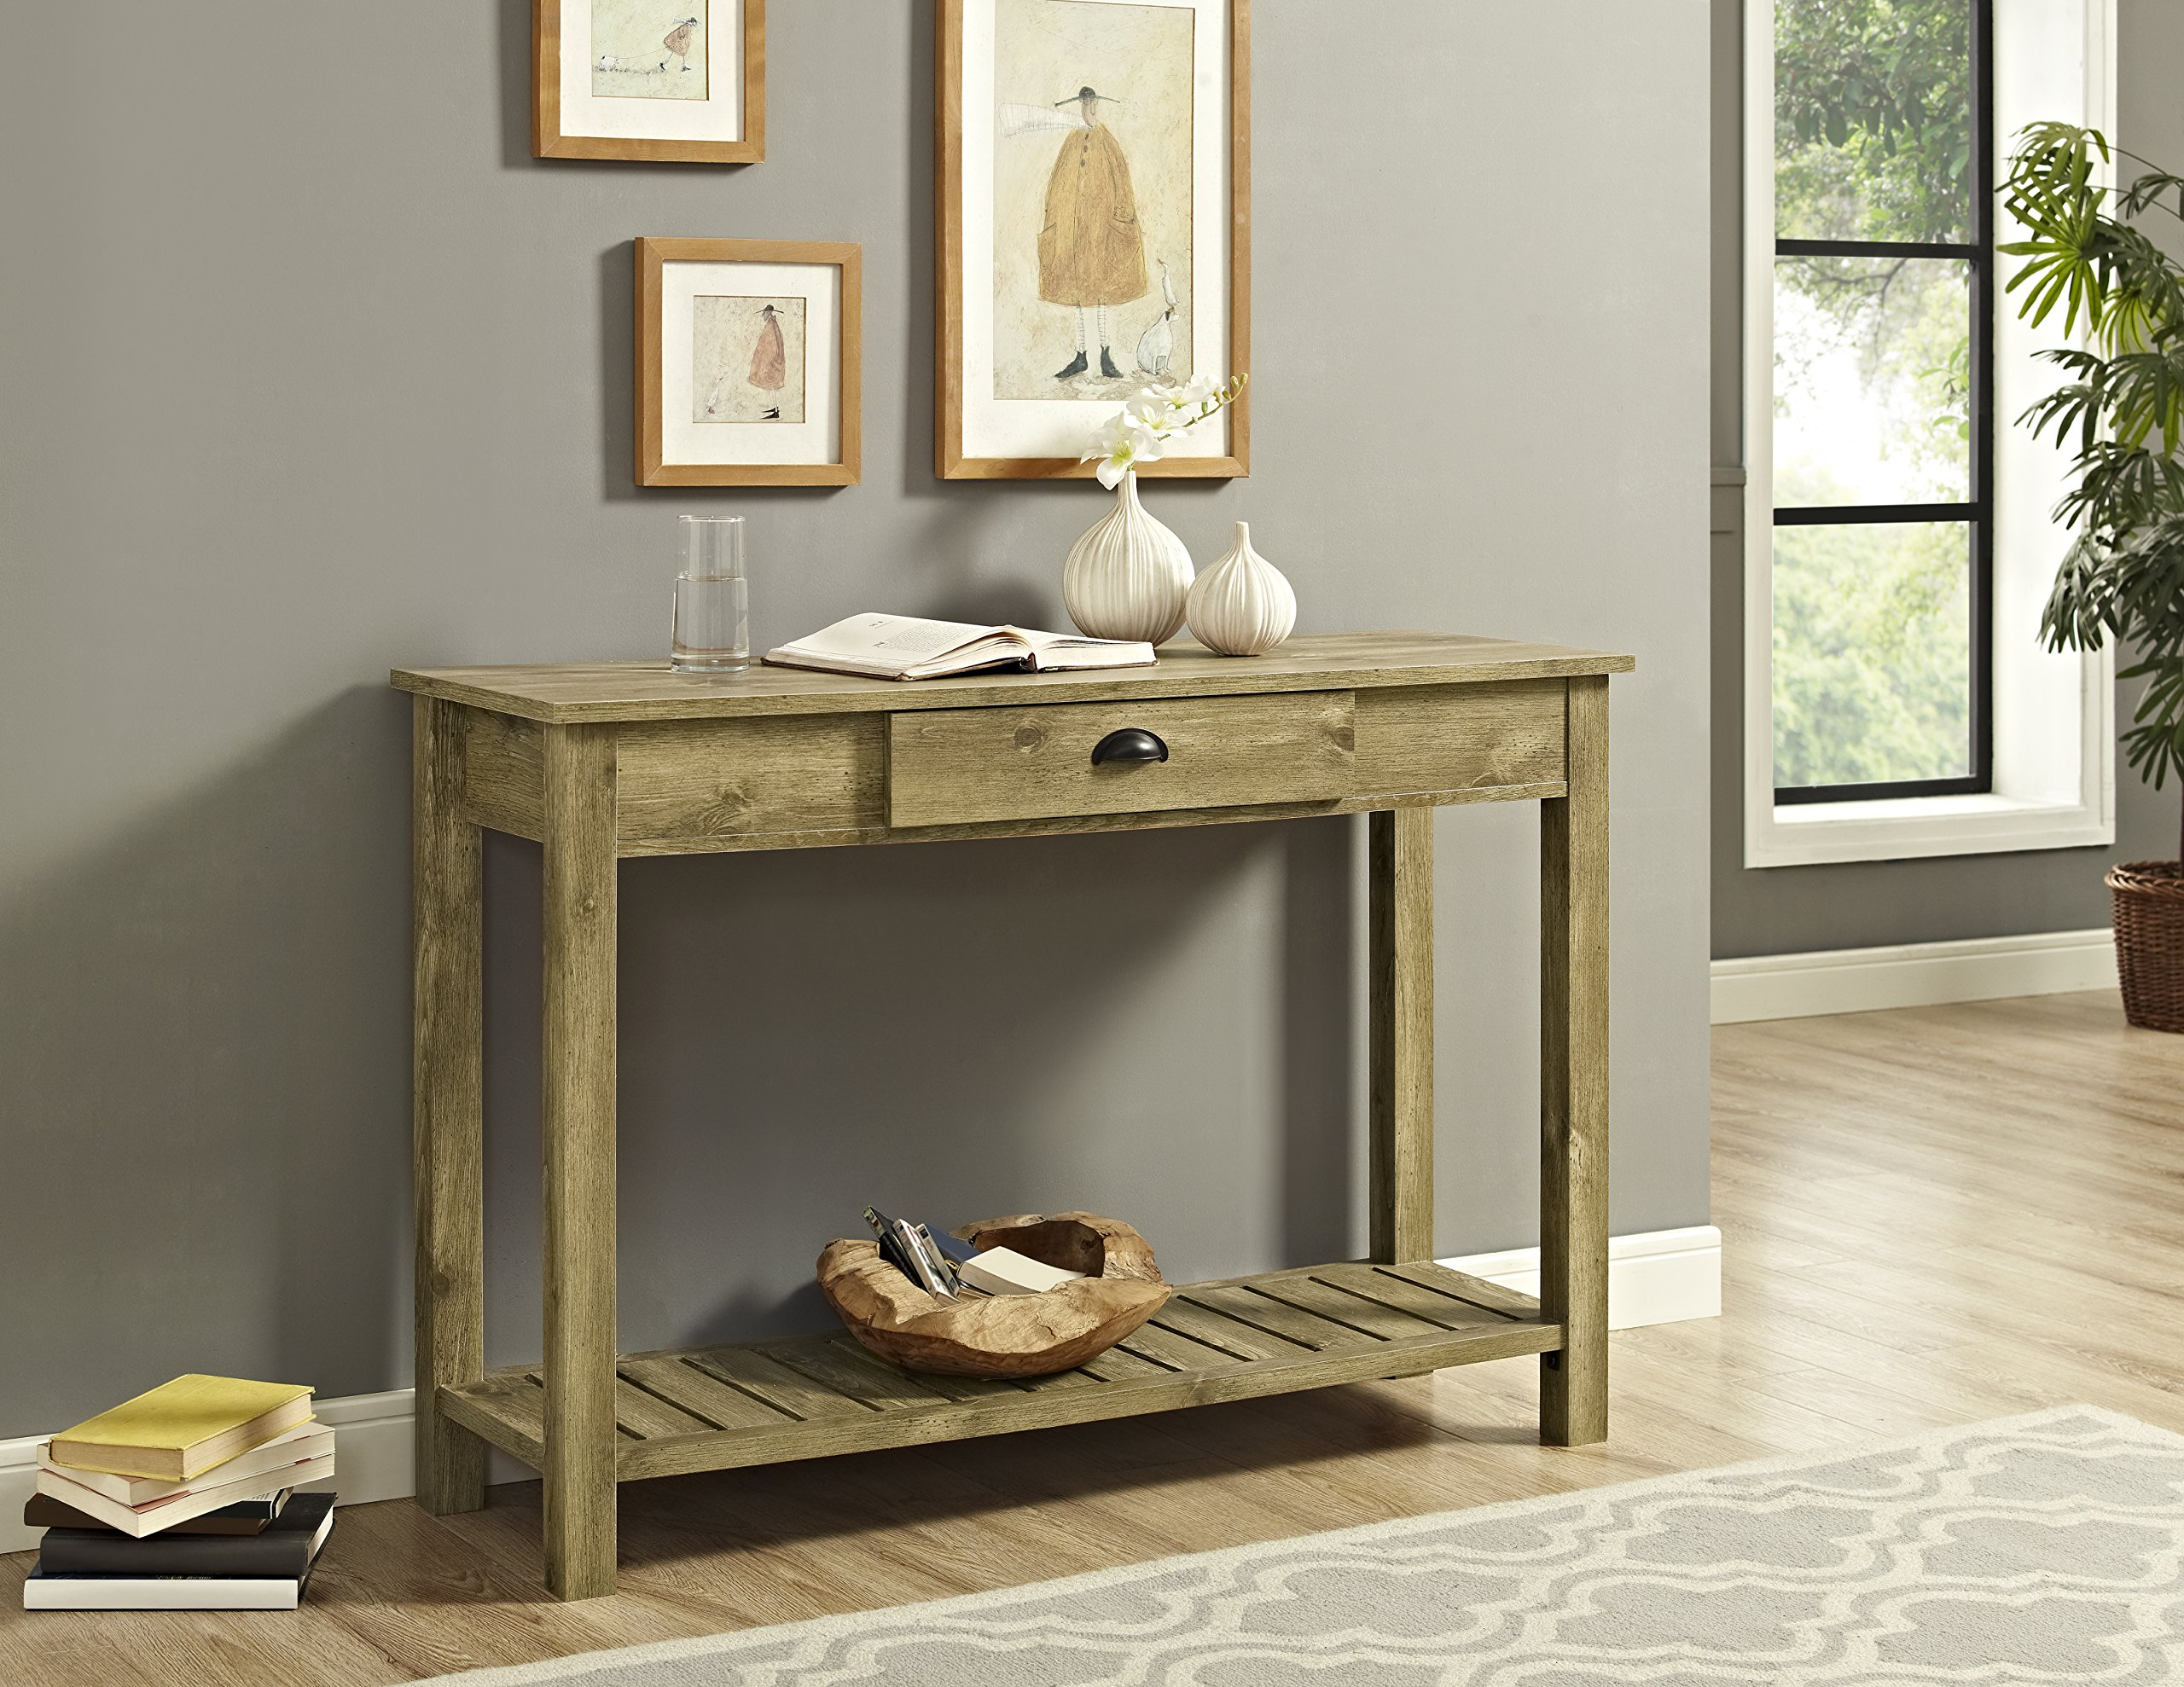 WE Furniture Country Style Entry Console Table - 48'', Barnwood